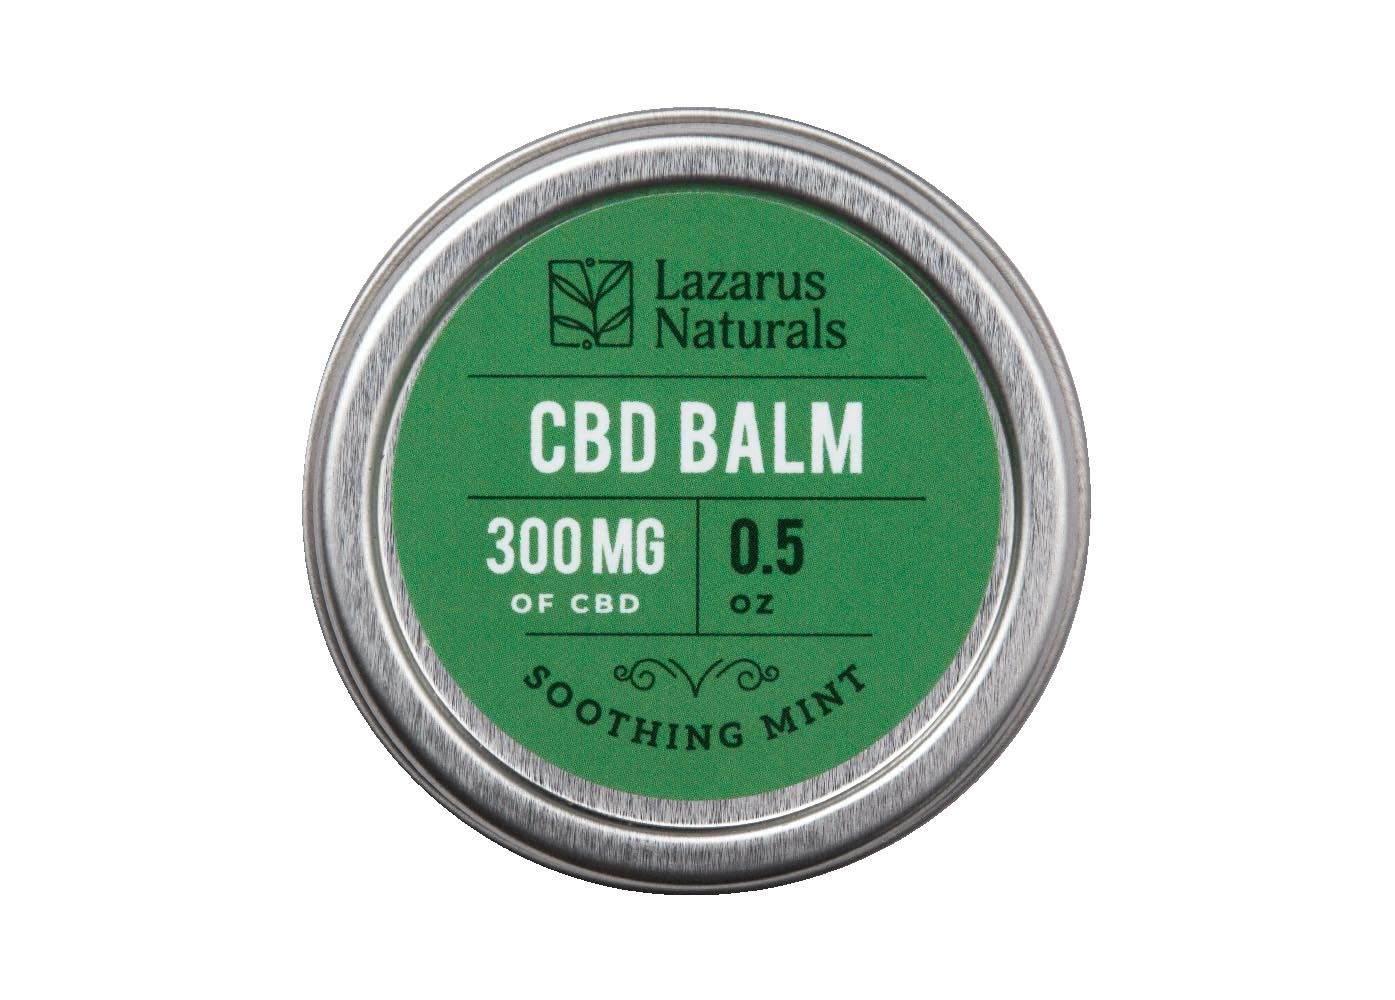 Lazarus Naturals Sooting Mint CBD Topical Balm - 300mg